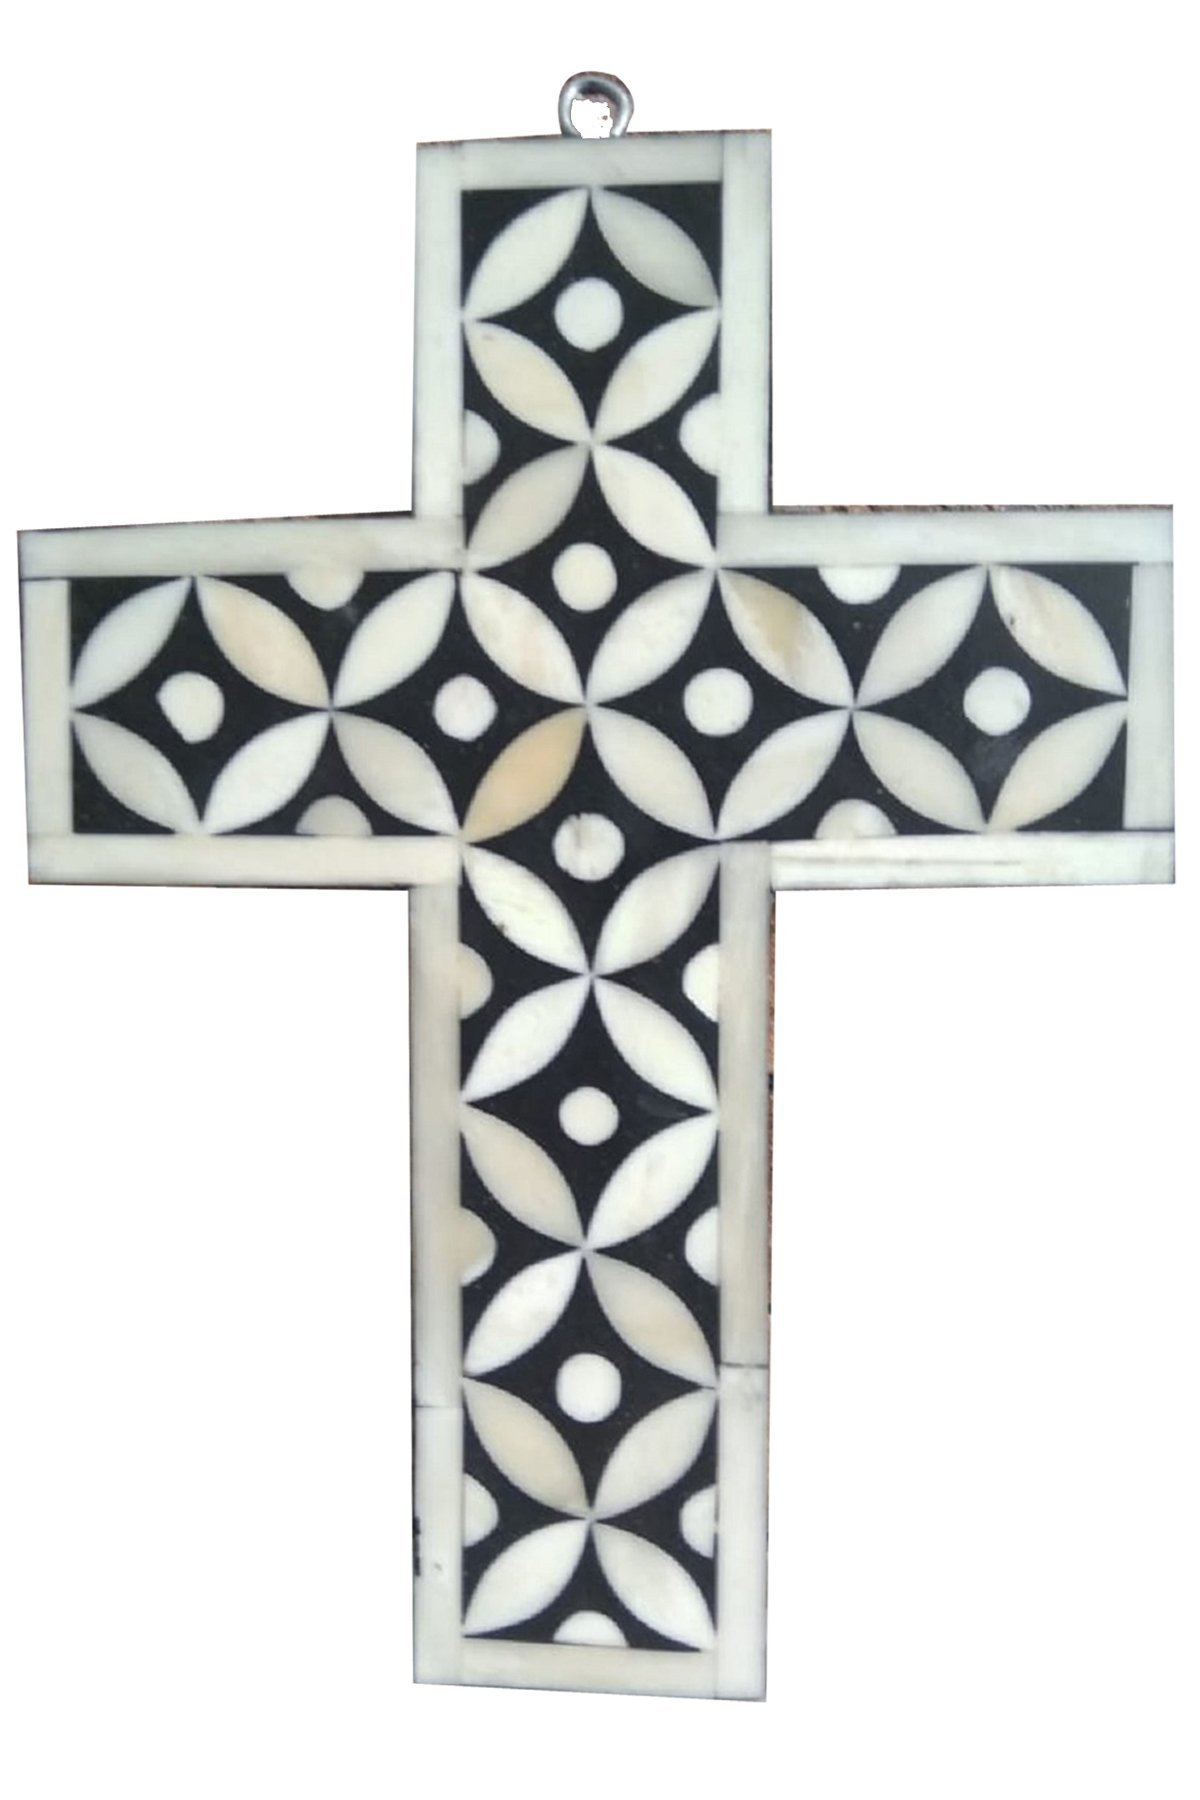 Fair Deal Handmade Star Eye Wall Hanging Bone Inlay Holy Cross Blessing For Home And Protection Against Evil Eye (Black)